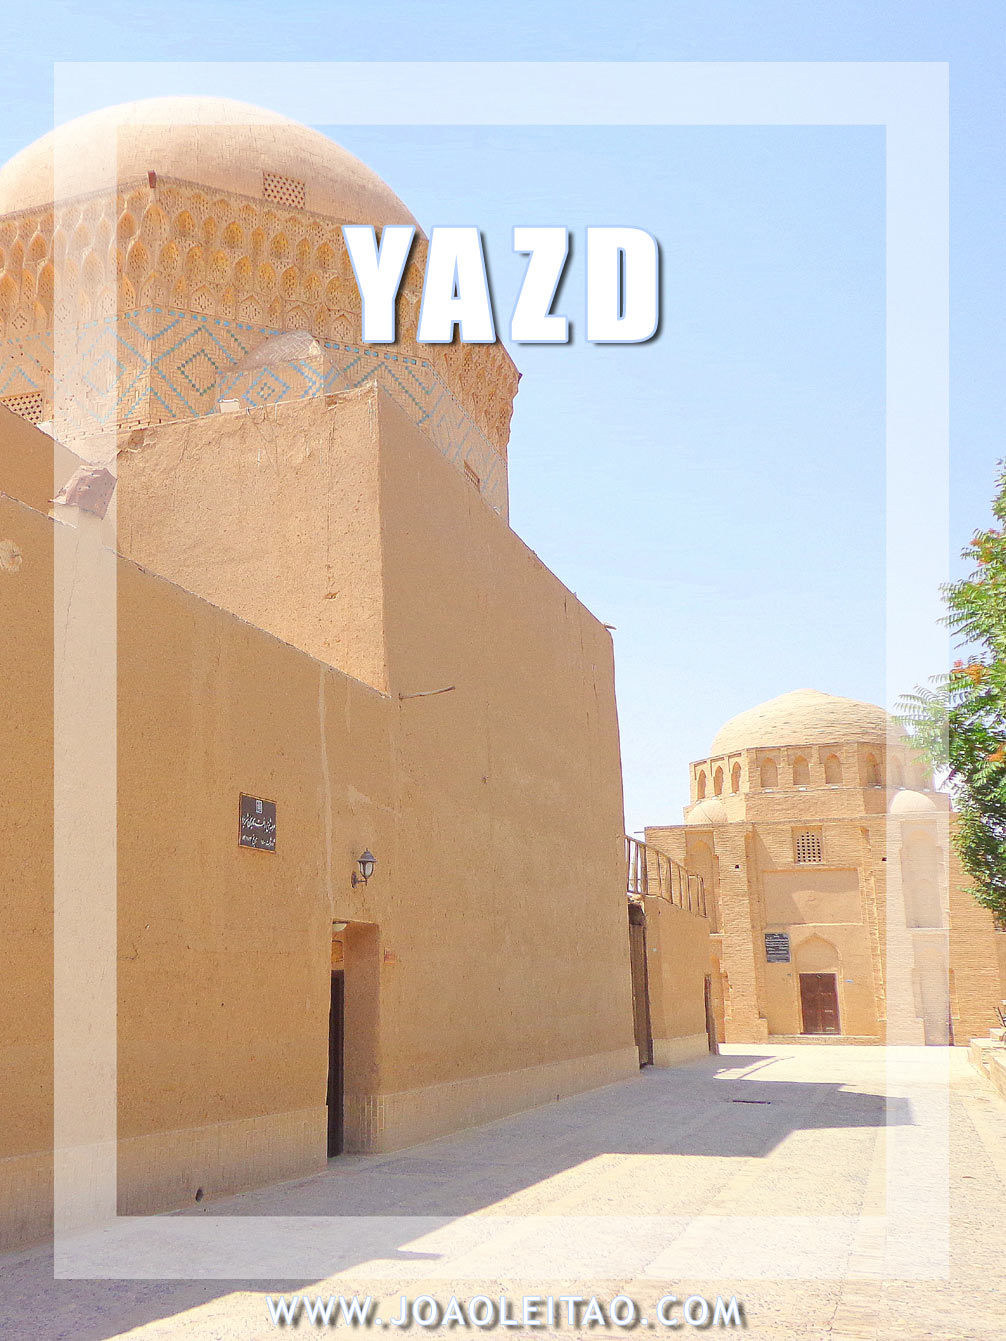 Yazd City Guide - Visit Yazd